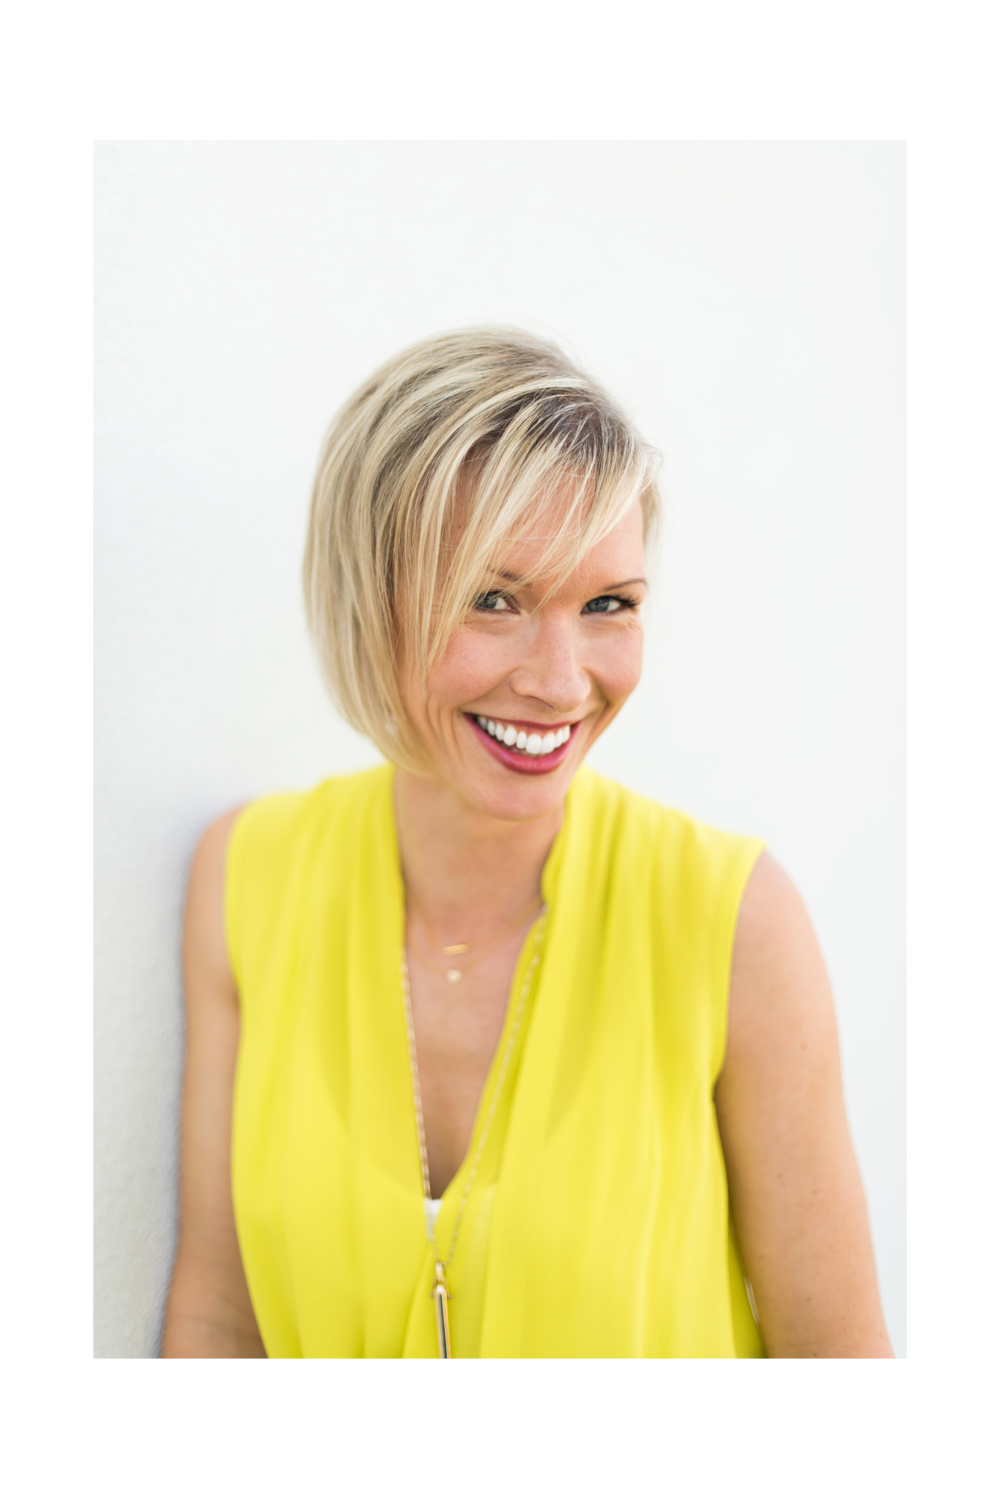 I'm Jen Ammer and as a certified coach that's exactly what I help people do in life - personally and professionally. I believe that once you cultivate a sense of who you are and what is most important to you, you can start harnessing your true power and internal direction. -